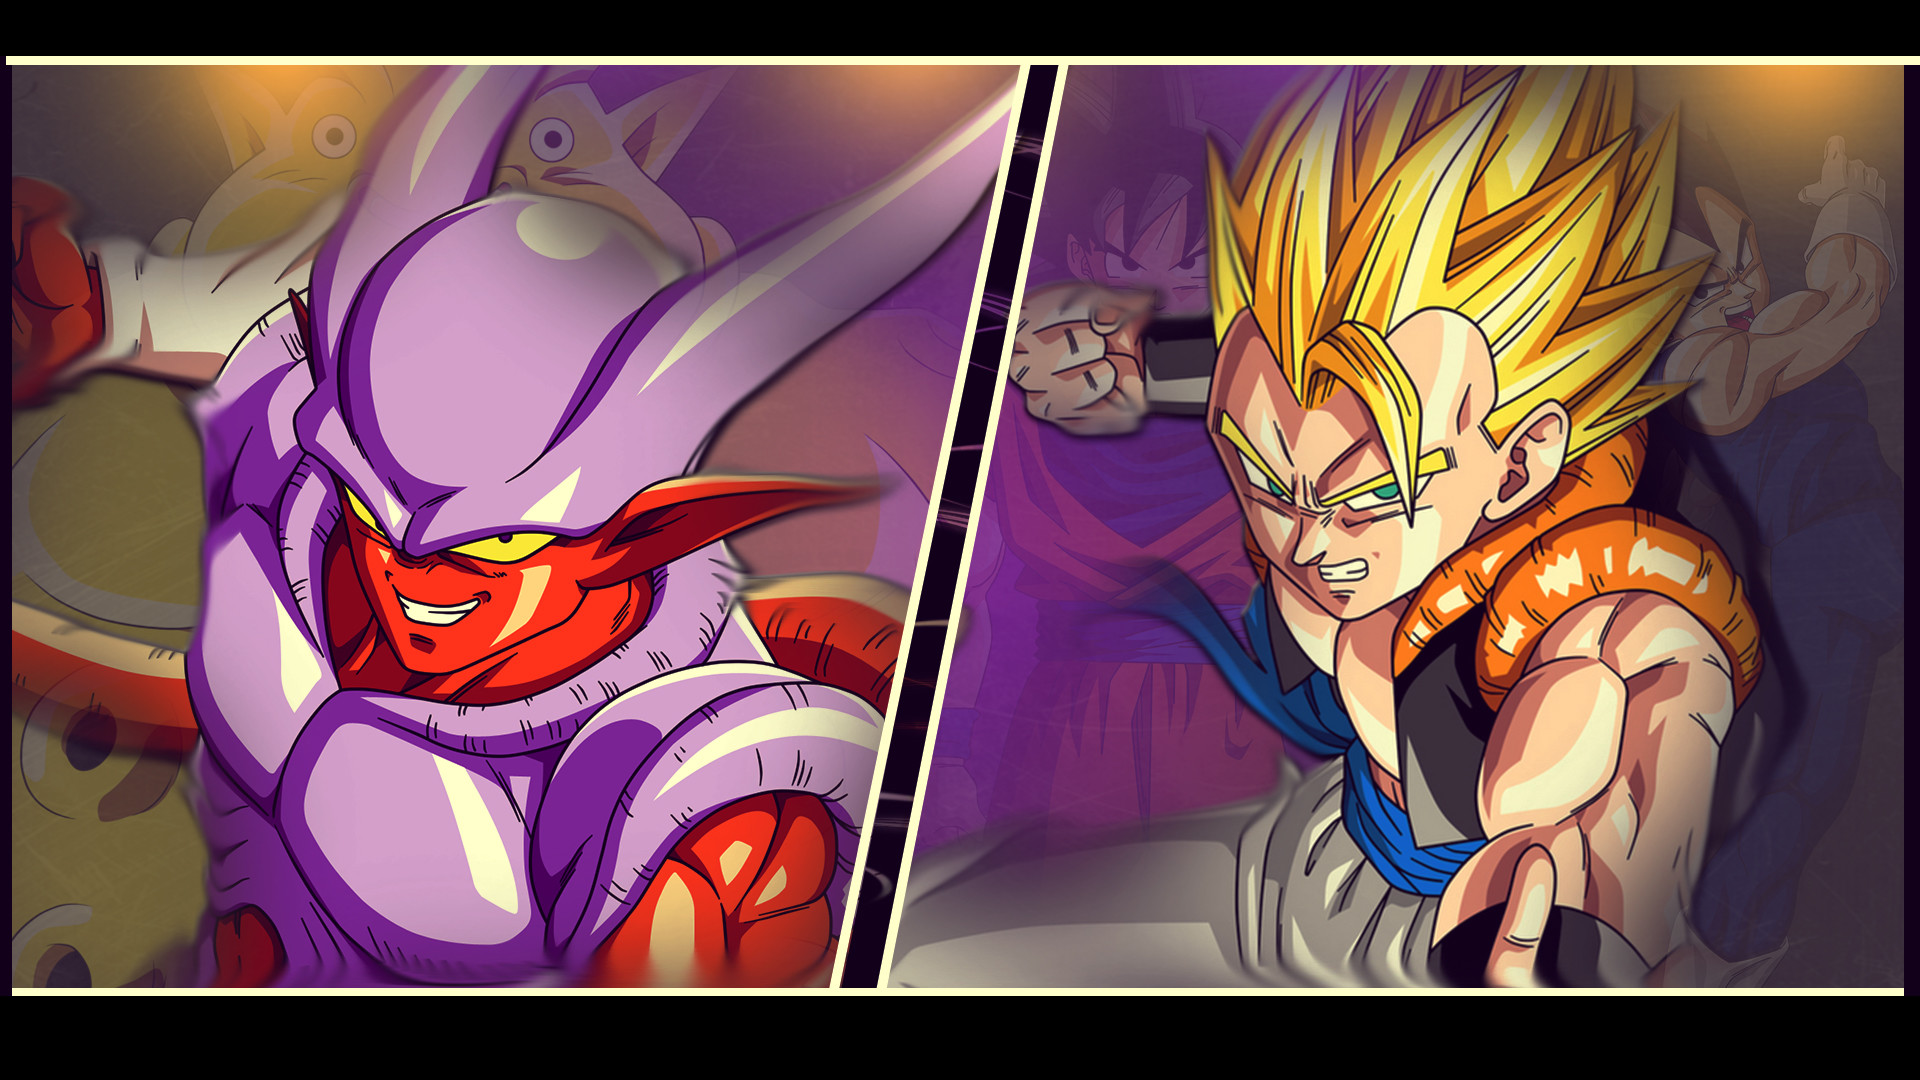 Res: 1920x1080, ... Gogeta and Janemba - DBZ Wallpaper 1920*1080 by Oirigns